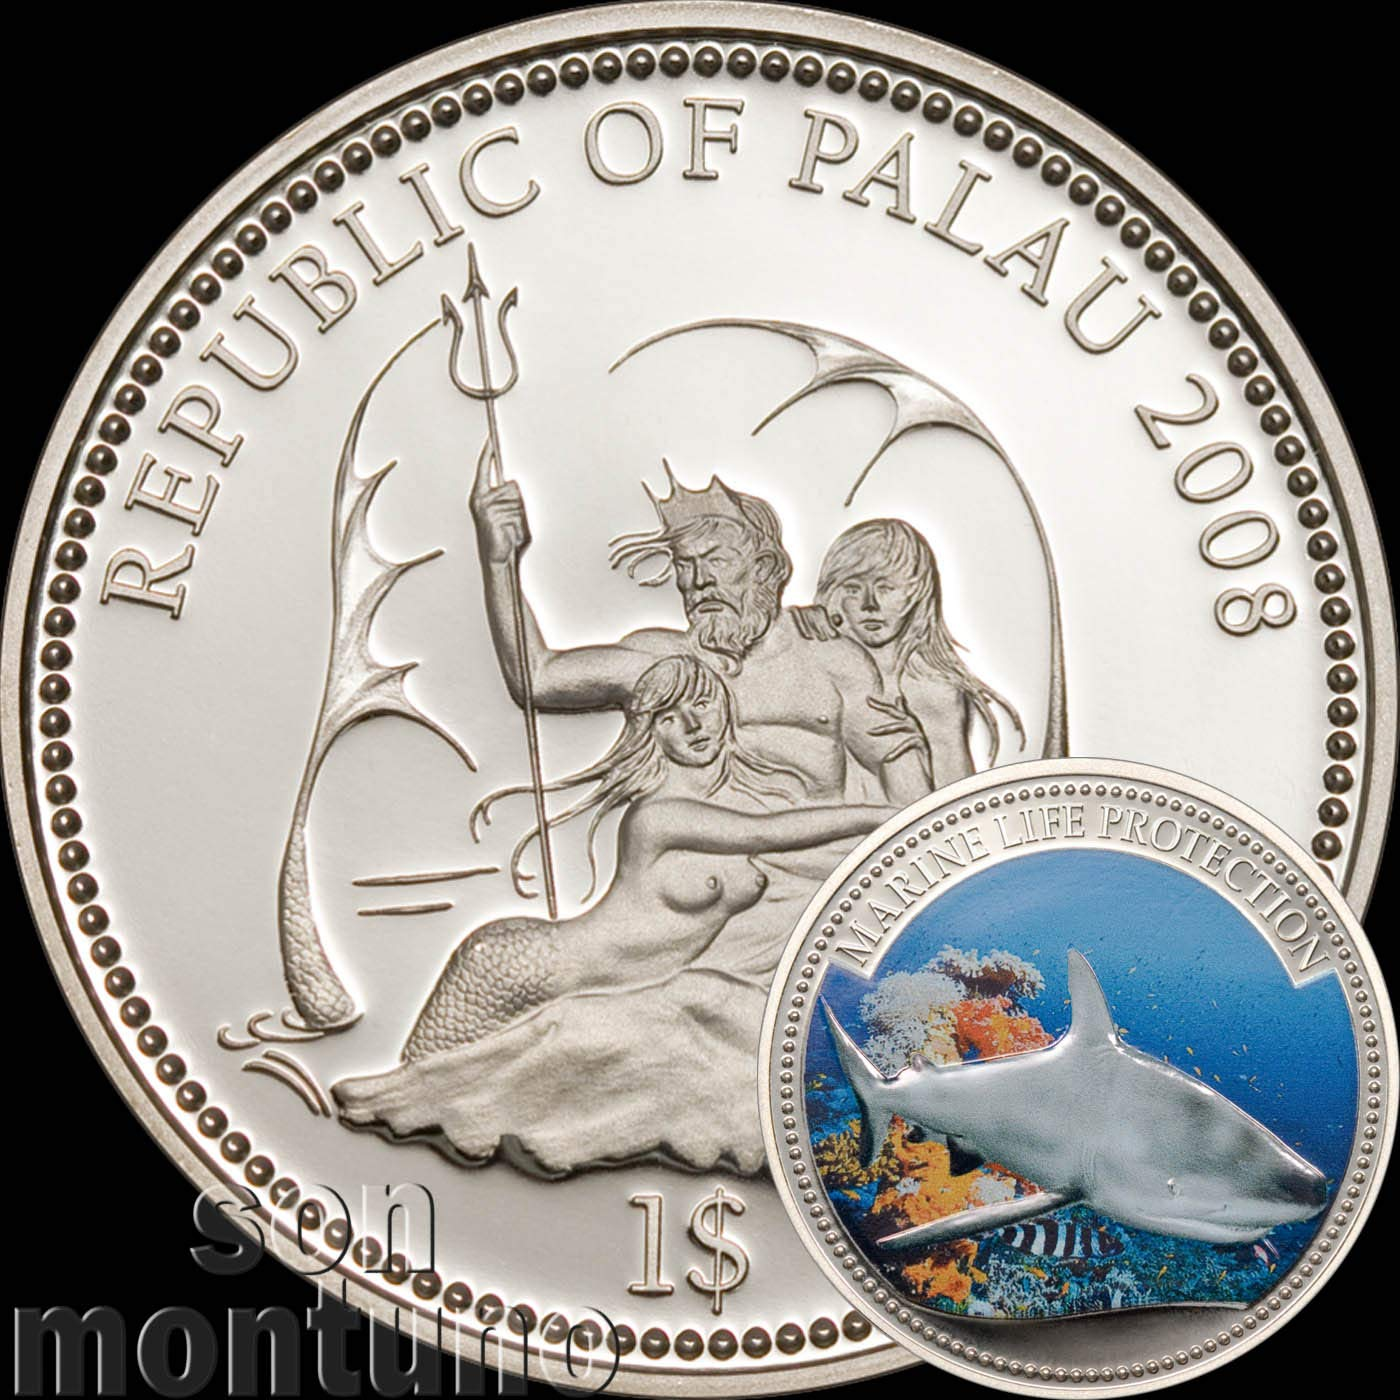 2008 GREY REEF SHARK - Palau Marine Life Protection Silver Plated Copper CuNi One Dollar Coin $1